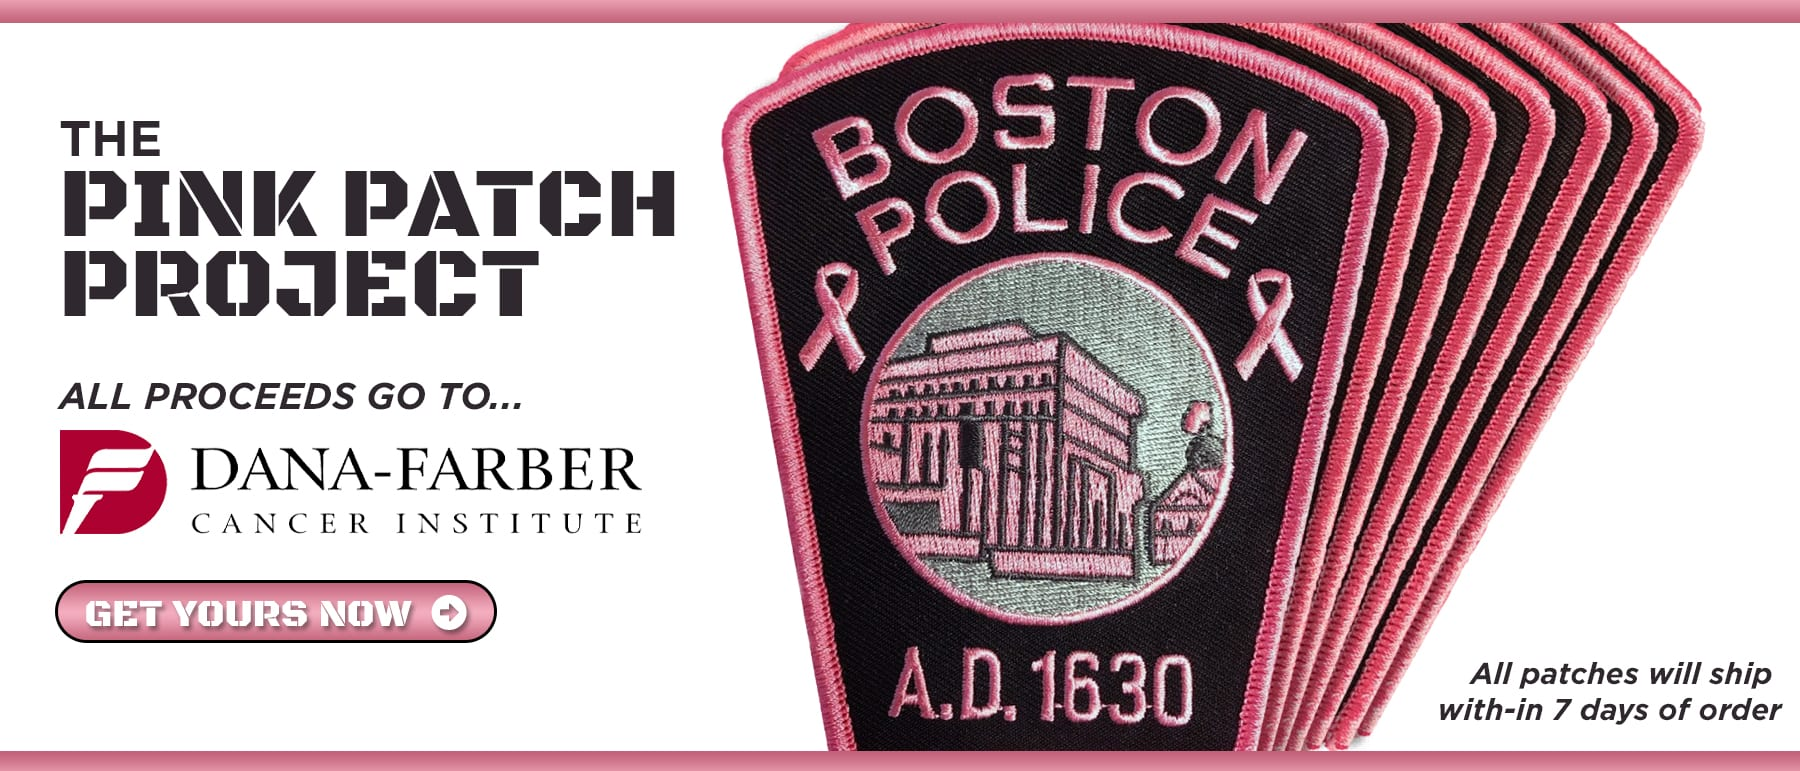 The Pink Patch Project